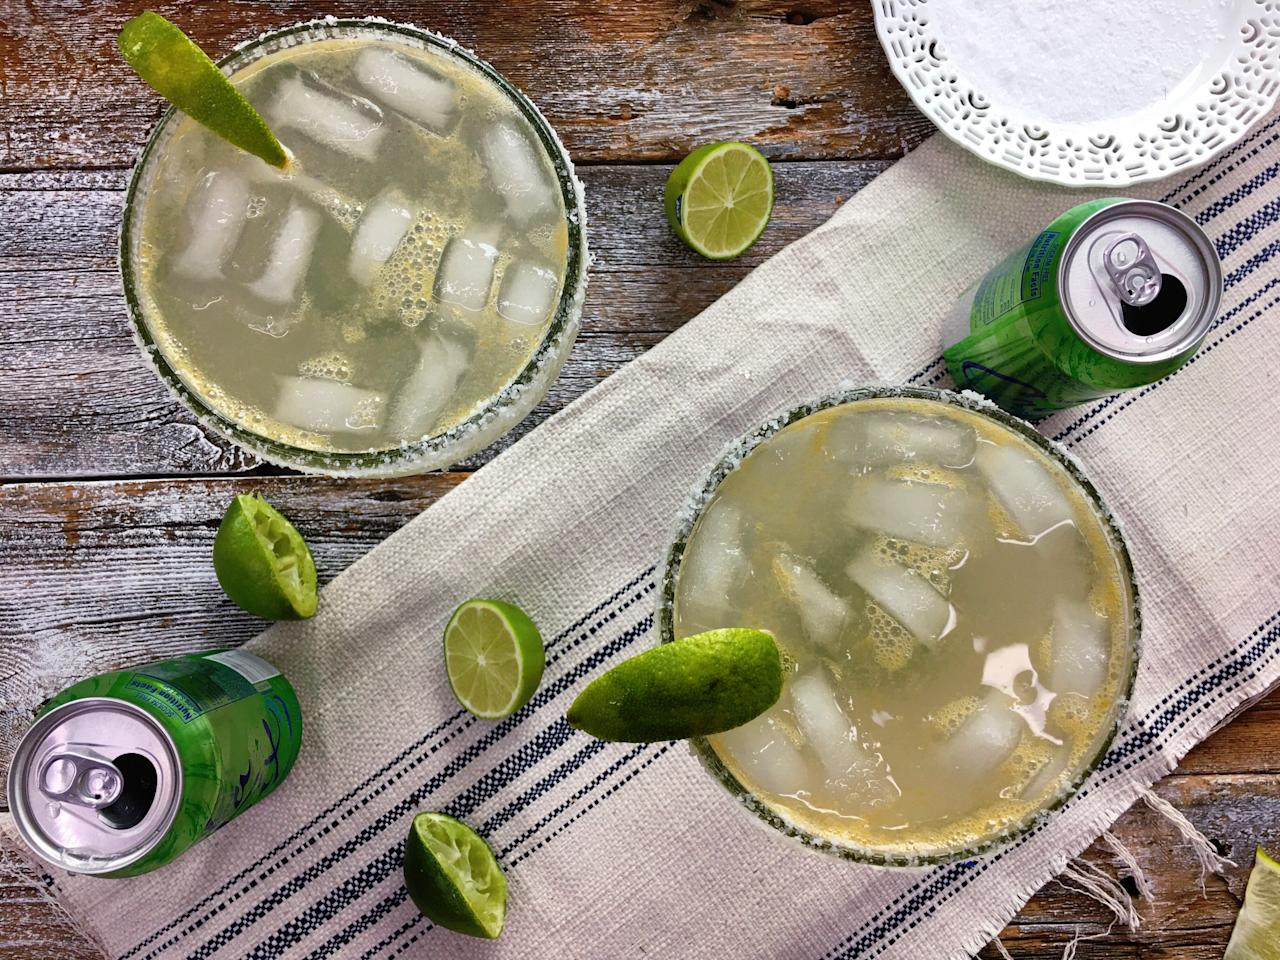 "<p>For a lighter spin on the classic margarita, look no further than a can of lime <a href=""https://www.myrecipes.com/recipe-finder/how-to-make-easy-light-pina-colada-coconut-la-croix"">LaCroix</a>, or your favorite lime-flavored seltzer water of choice. With no added sugar, this skinny version is super easy to make and comes with significantly less guilt. Serve in a festive margarita glass rimmed with salt, if desired.</p> <p><a href=""https://www.myrecipes.com/recipe/la-croix-margarita"">La Croix Margarita Recipe</a></p>"